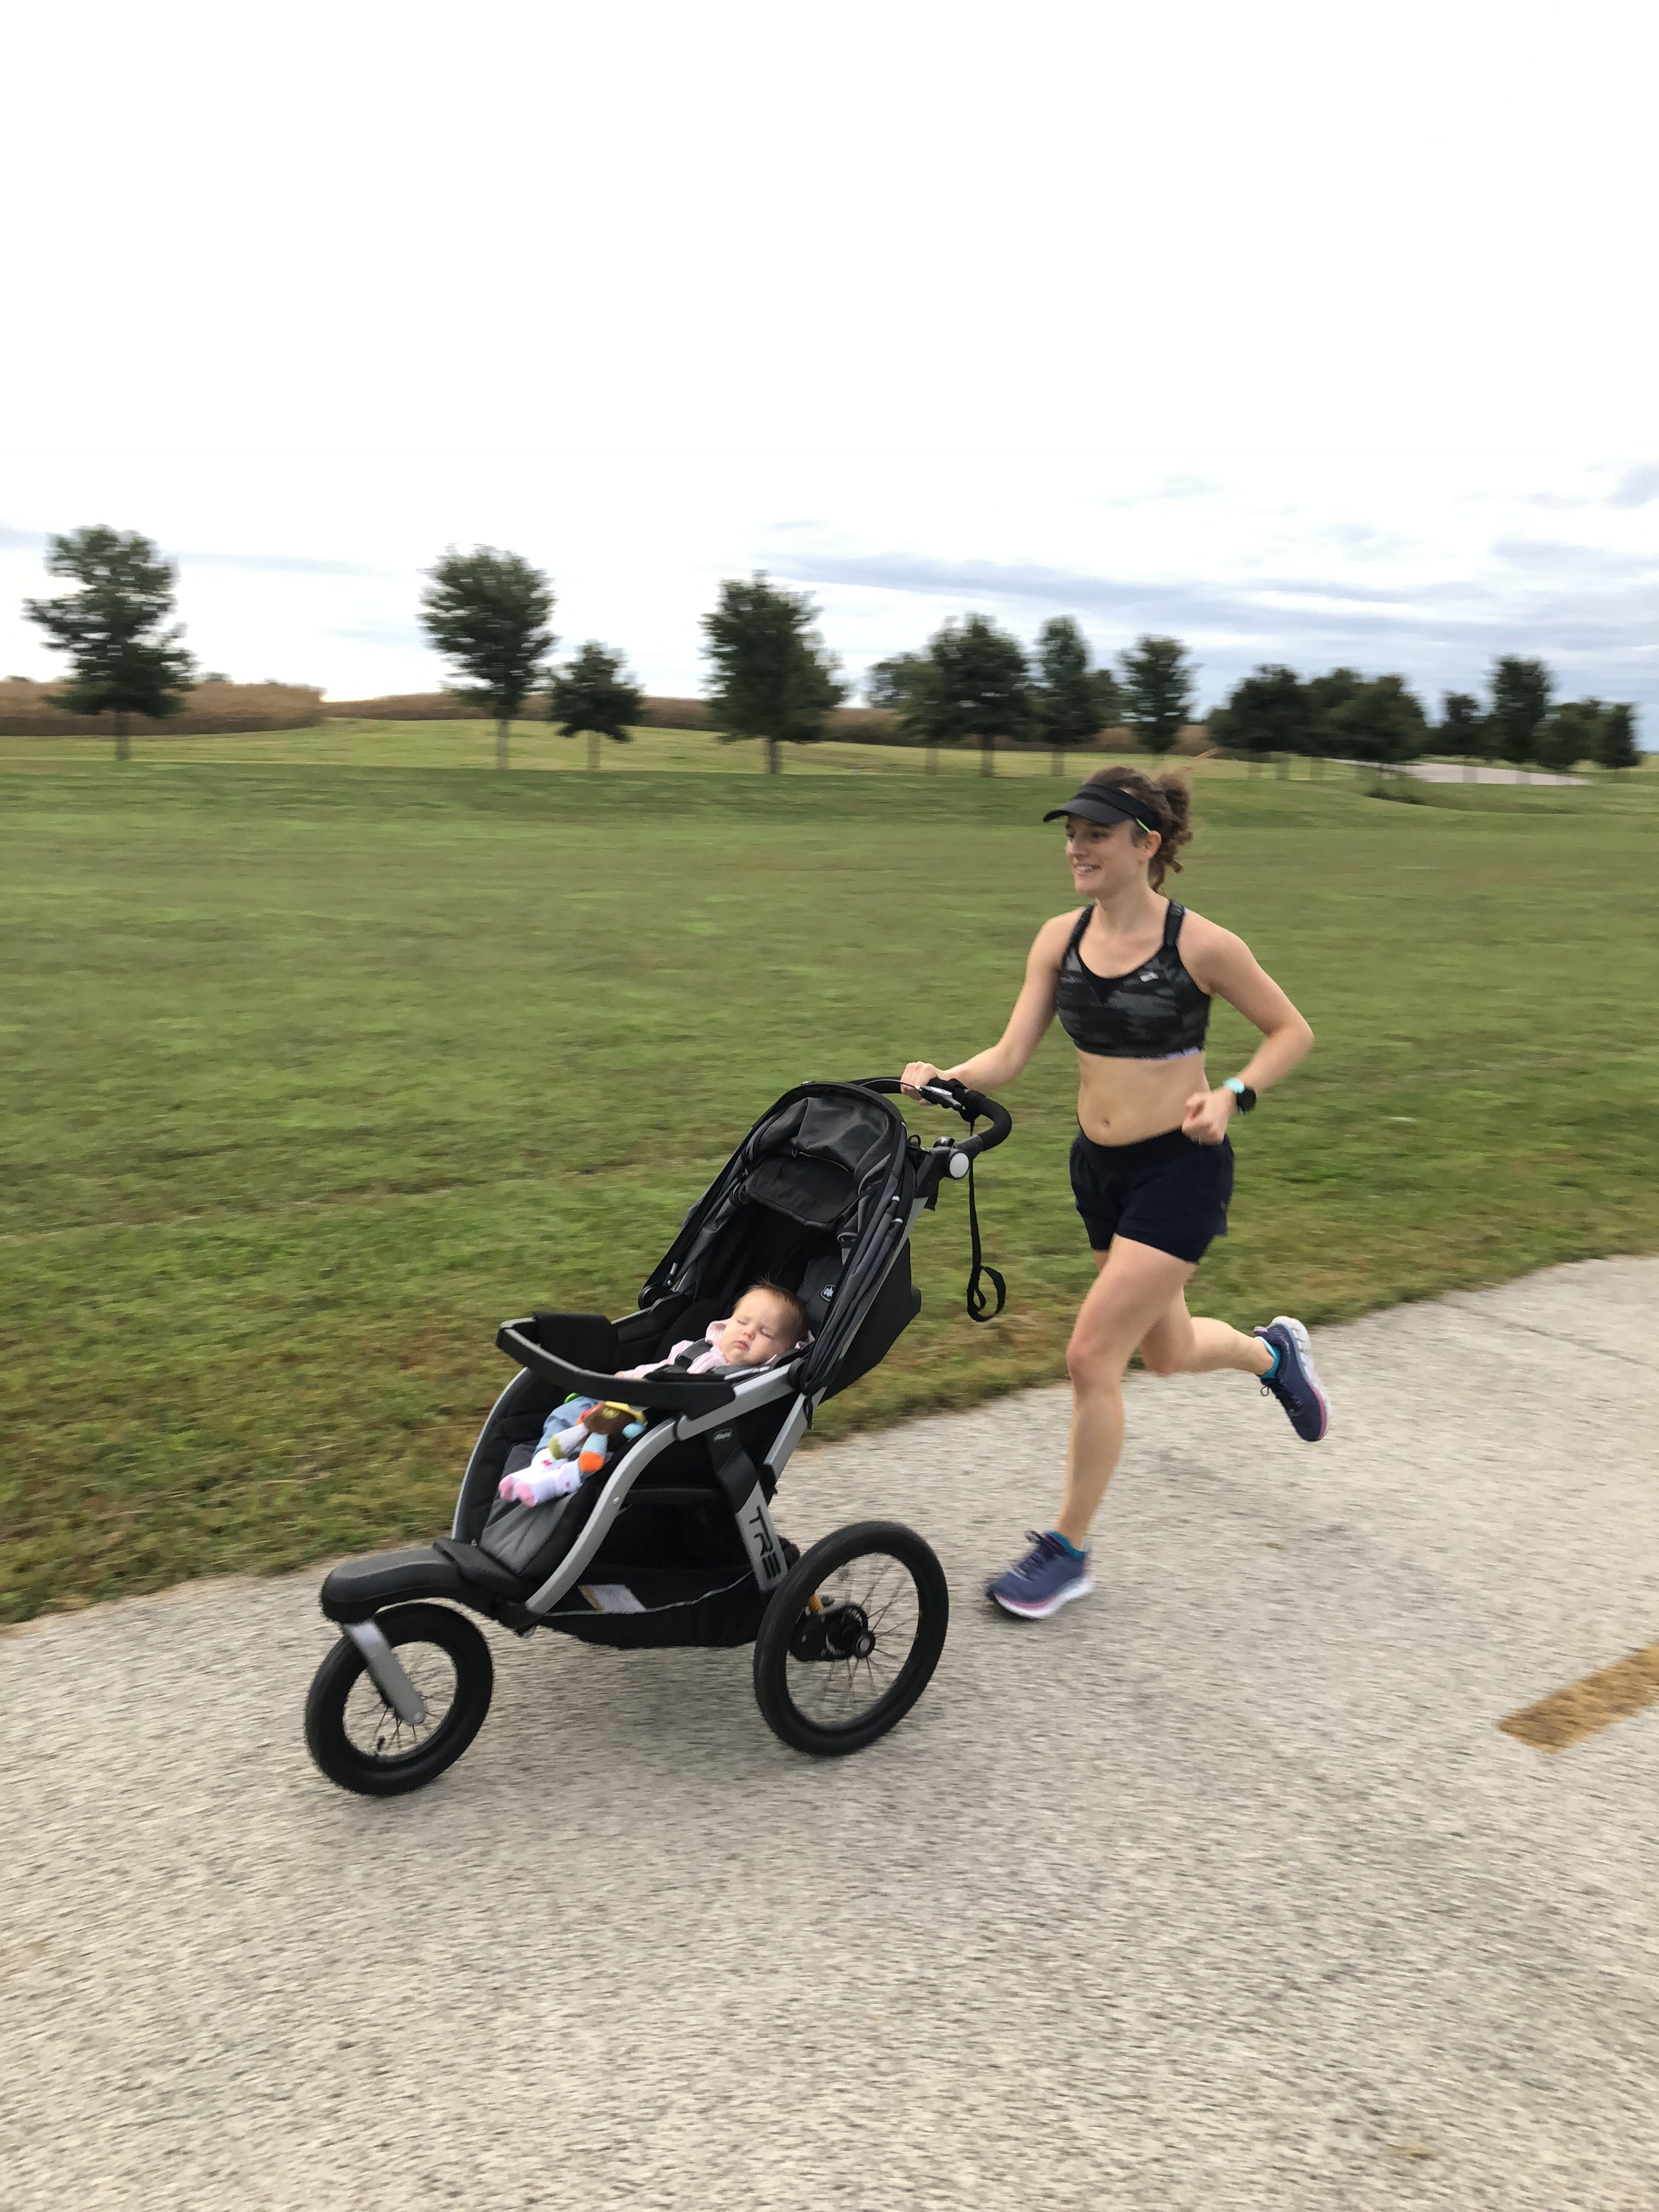 How to Run With a Running Stroller Effectively